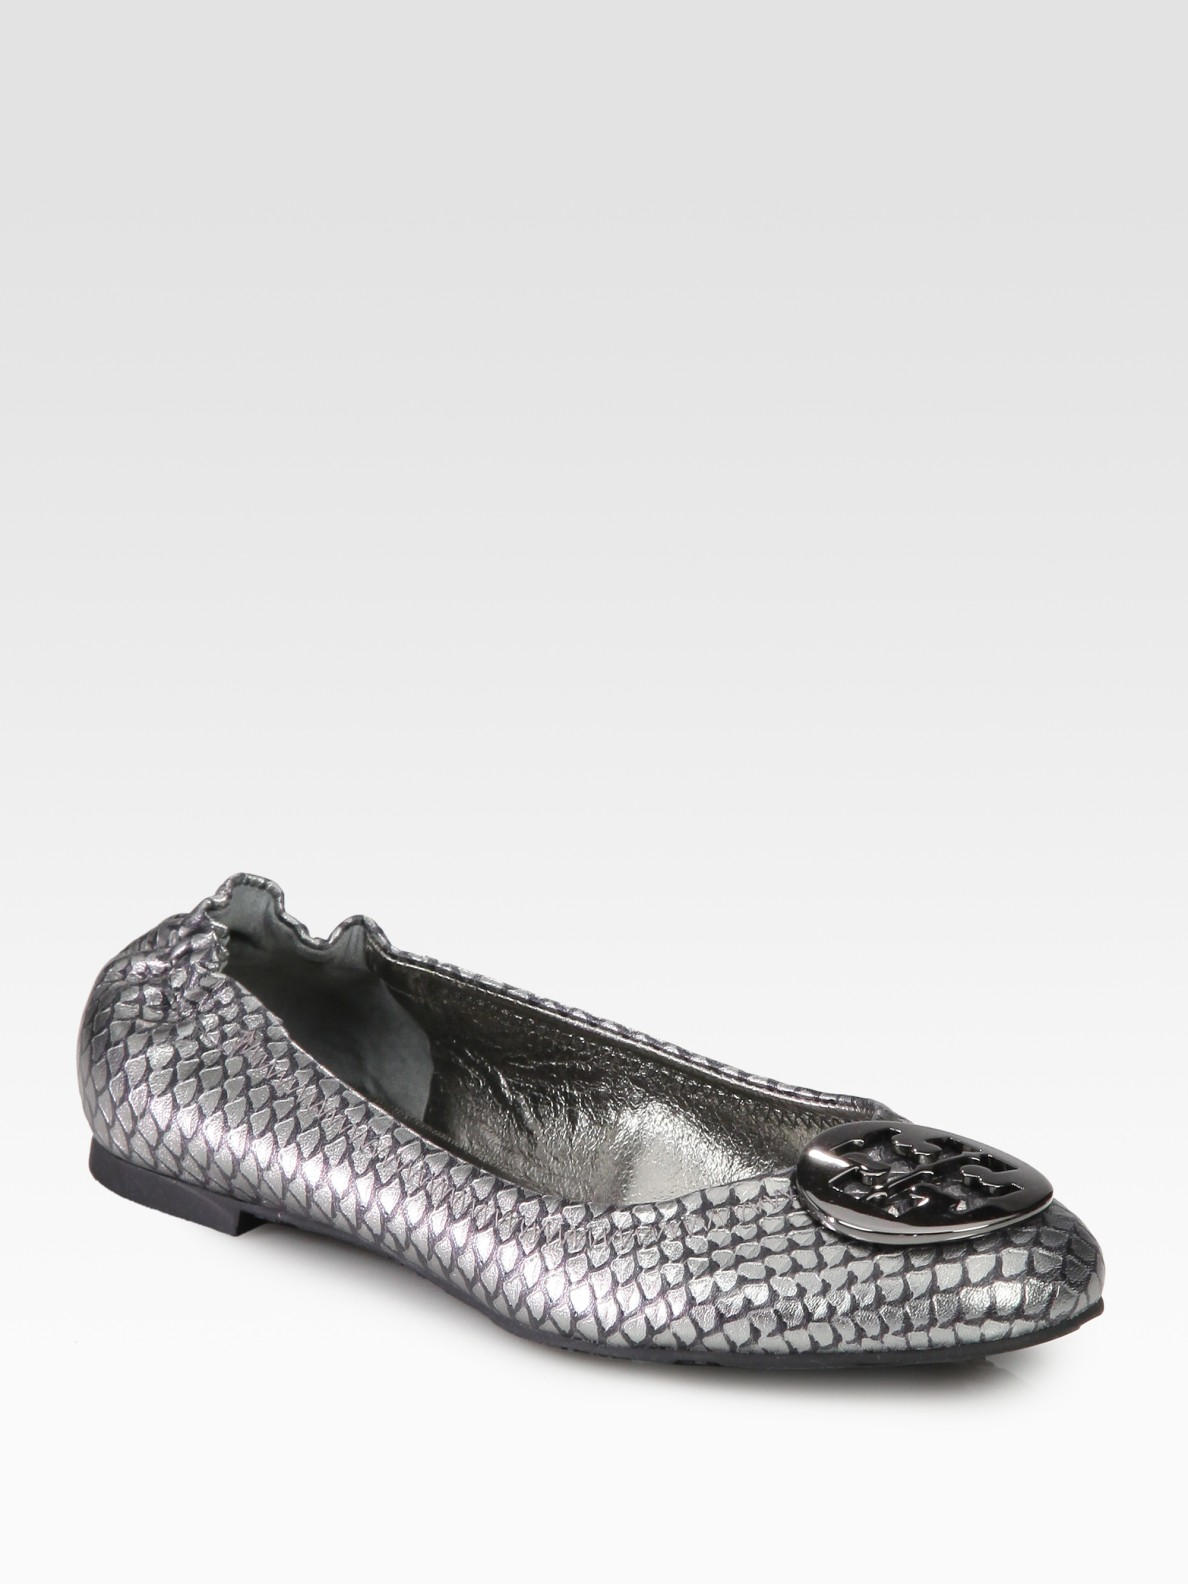 Lyst Tory Burch Reva Fish Scale Embossed Foil Leather